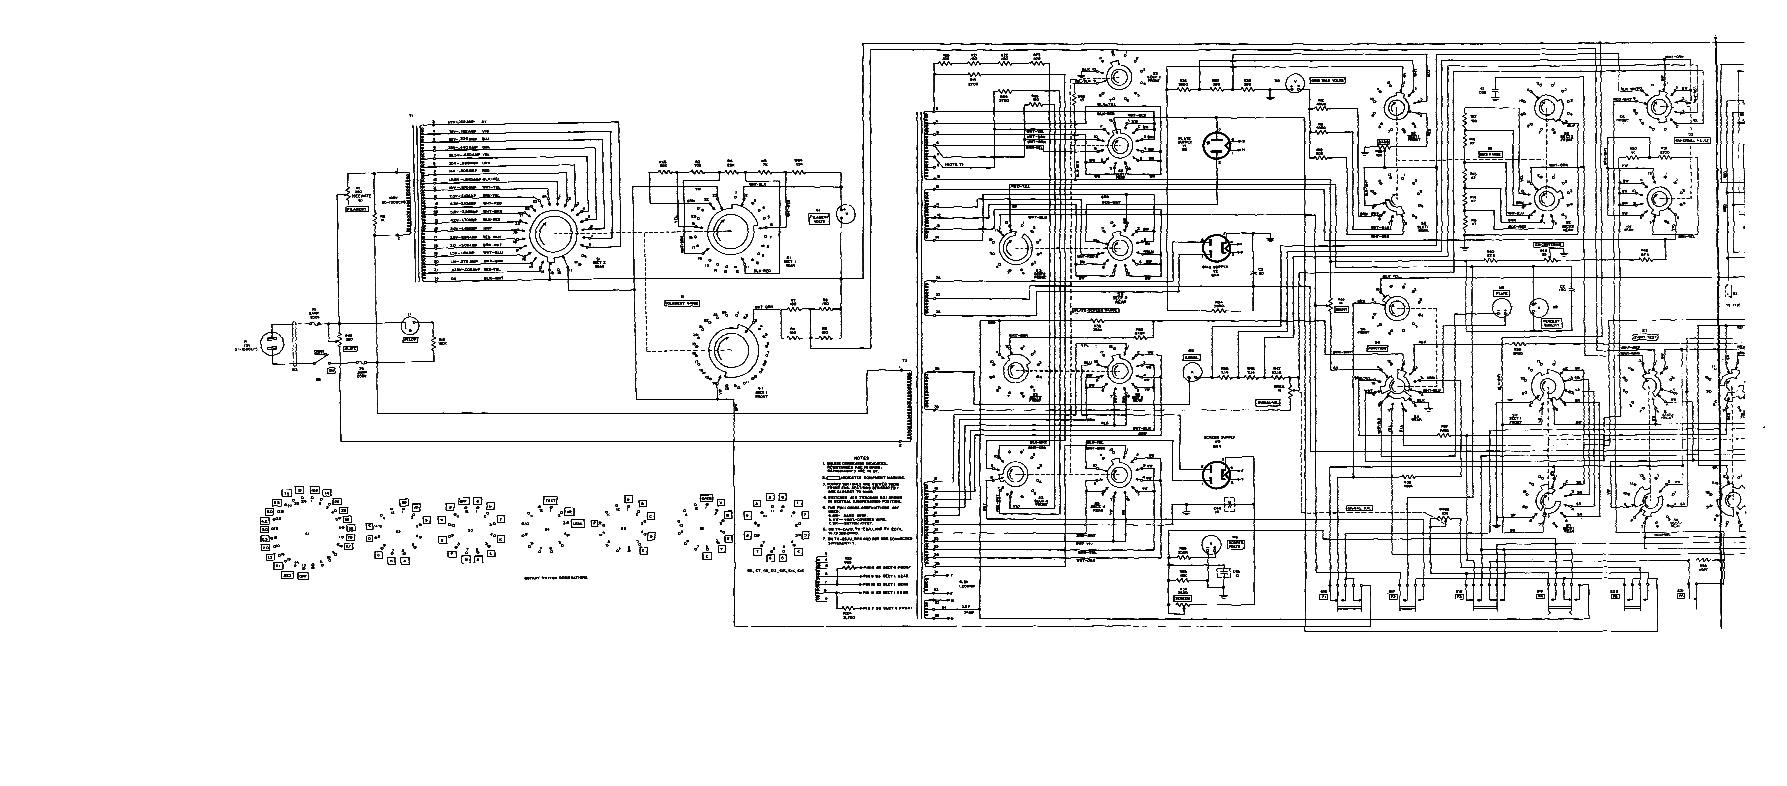 Diagram  Samsung Lcd Tv Wiring Diagrams Pictures Full Version Hd Quality Diagrams Pictures